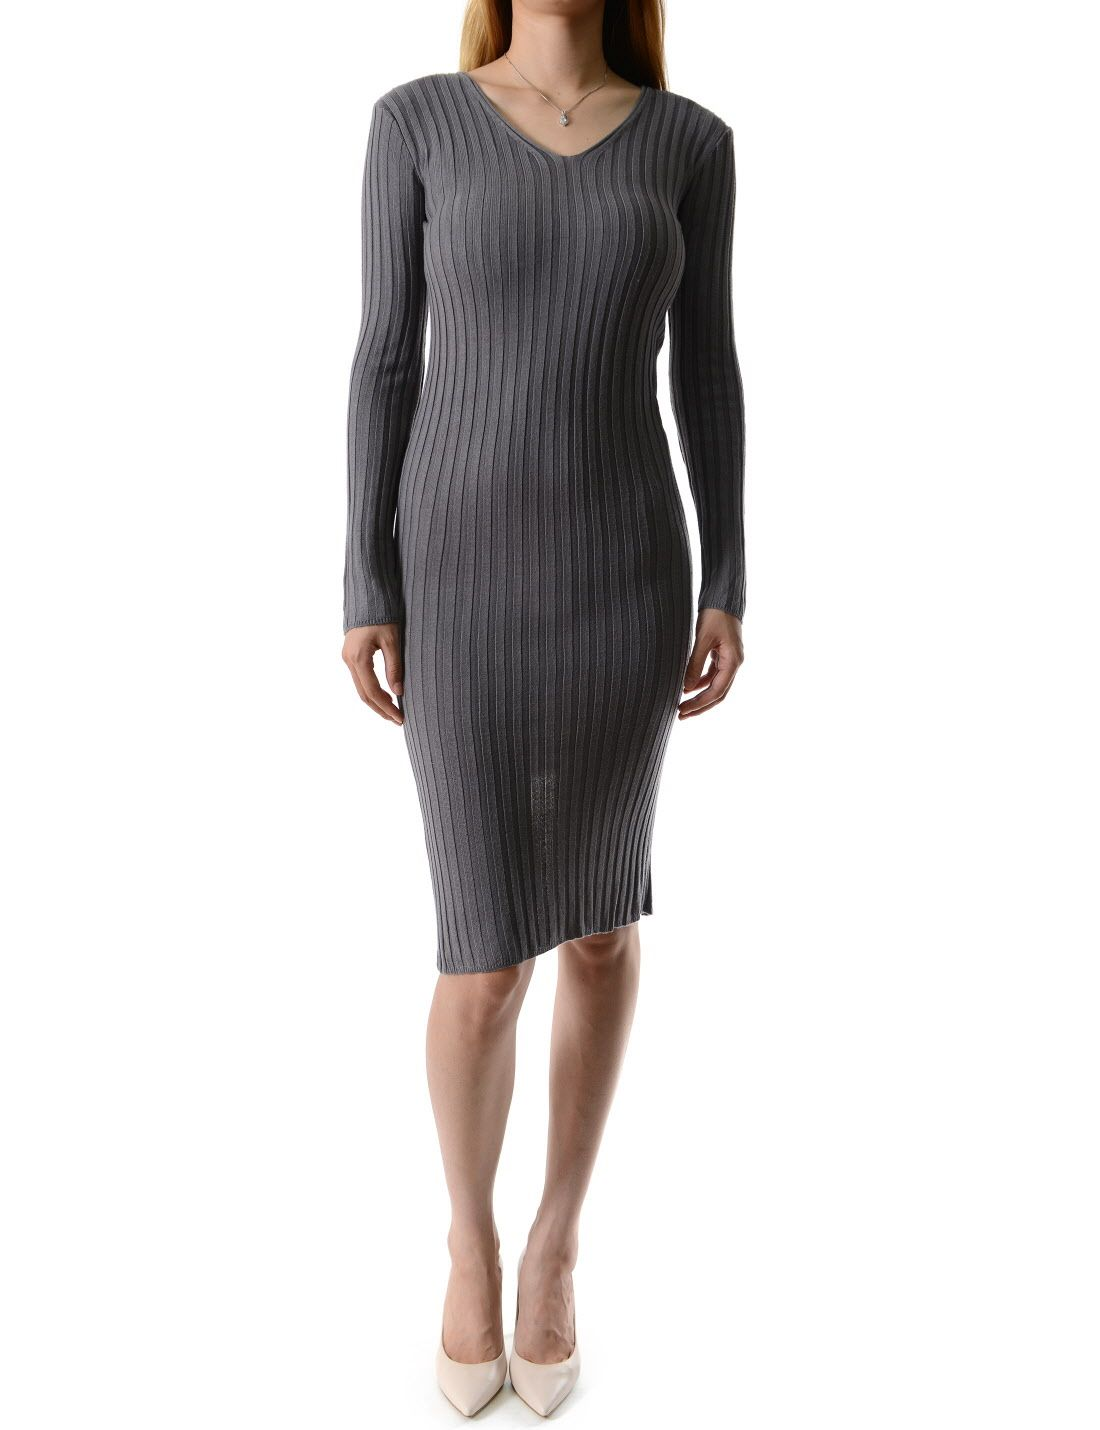 All Mens Slim Luxury Items Long Sleeve Dress Dresses With Sleeves Fitted Dress [ 1430 x 1100 Pixel ]